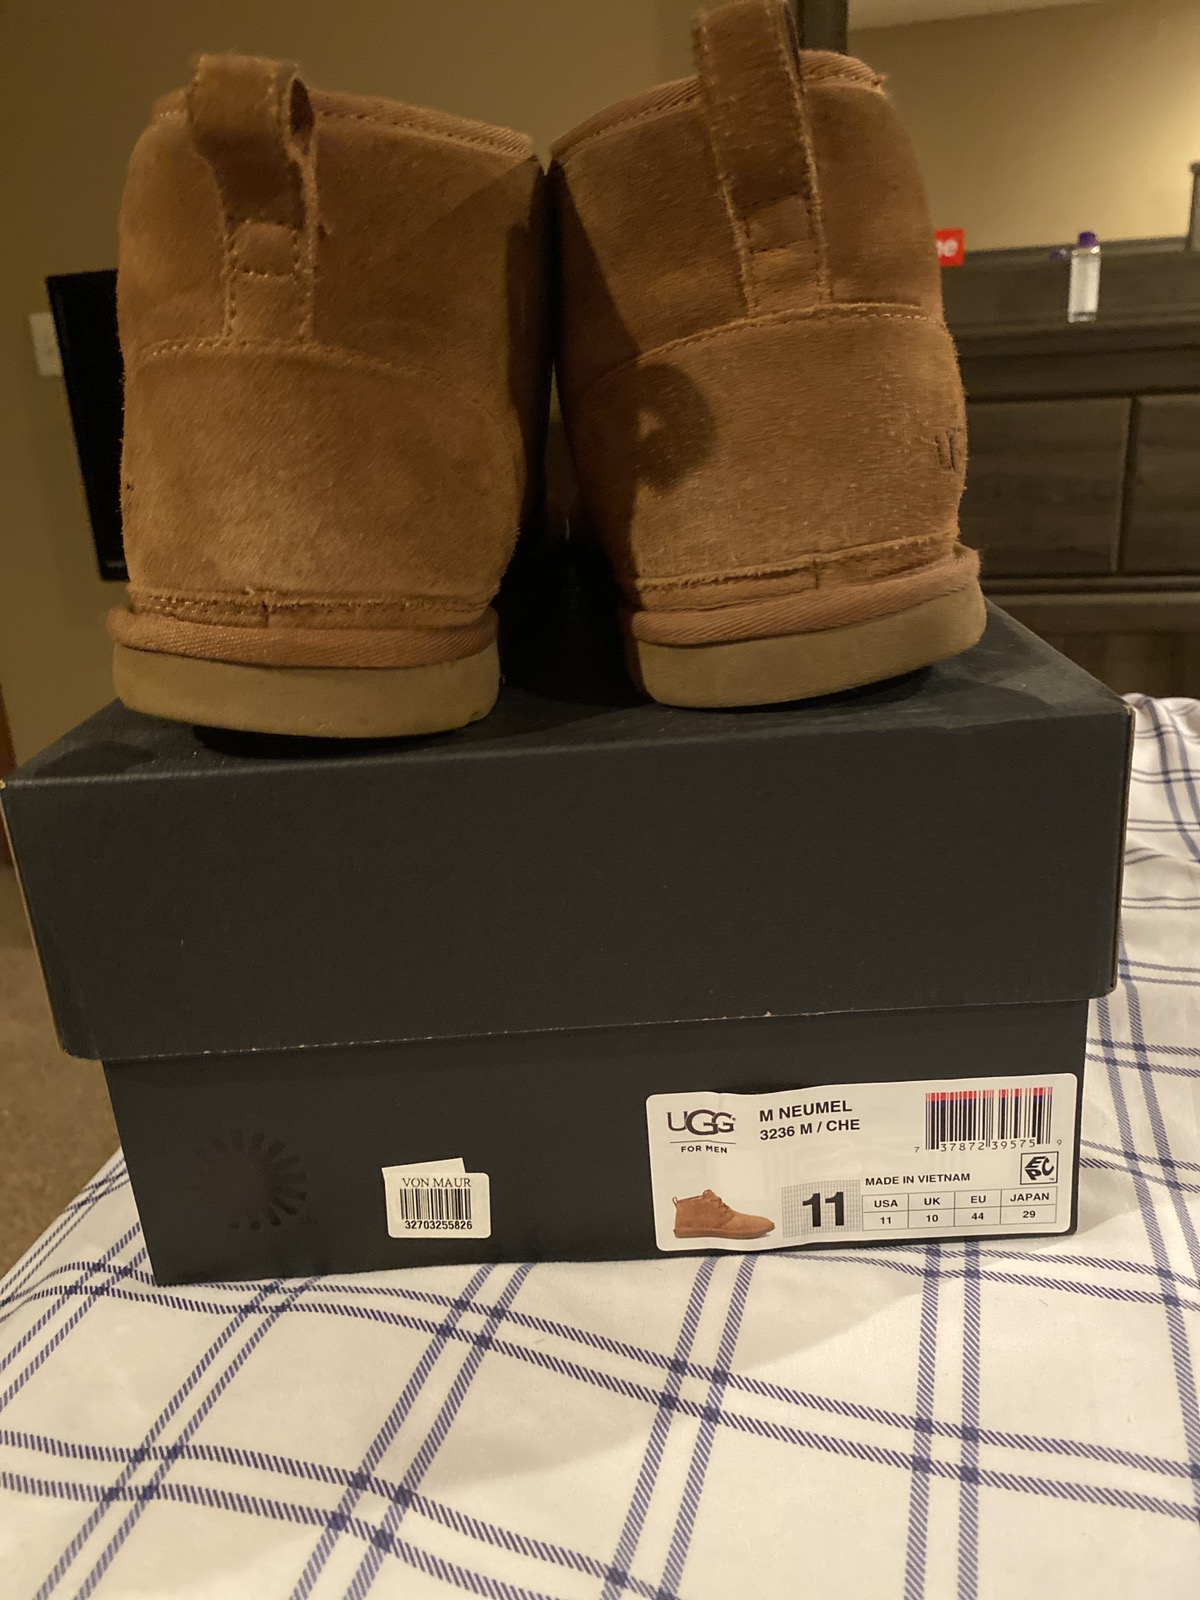 Are Uggs Made In Vietnam : vietnam, Boots, Grailed